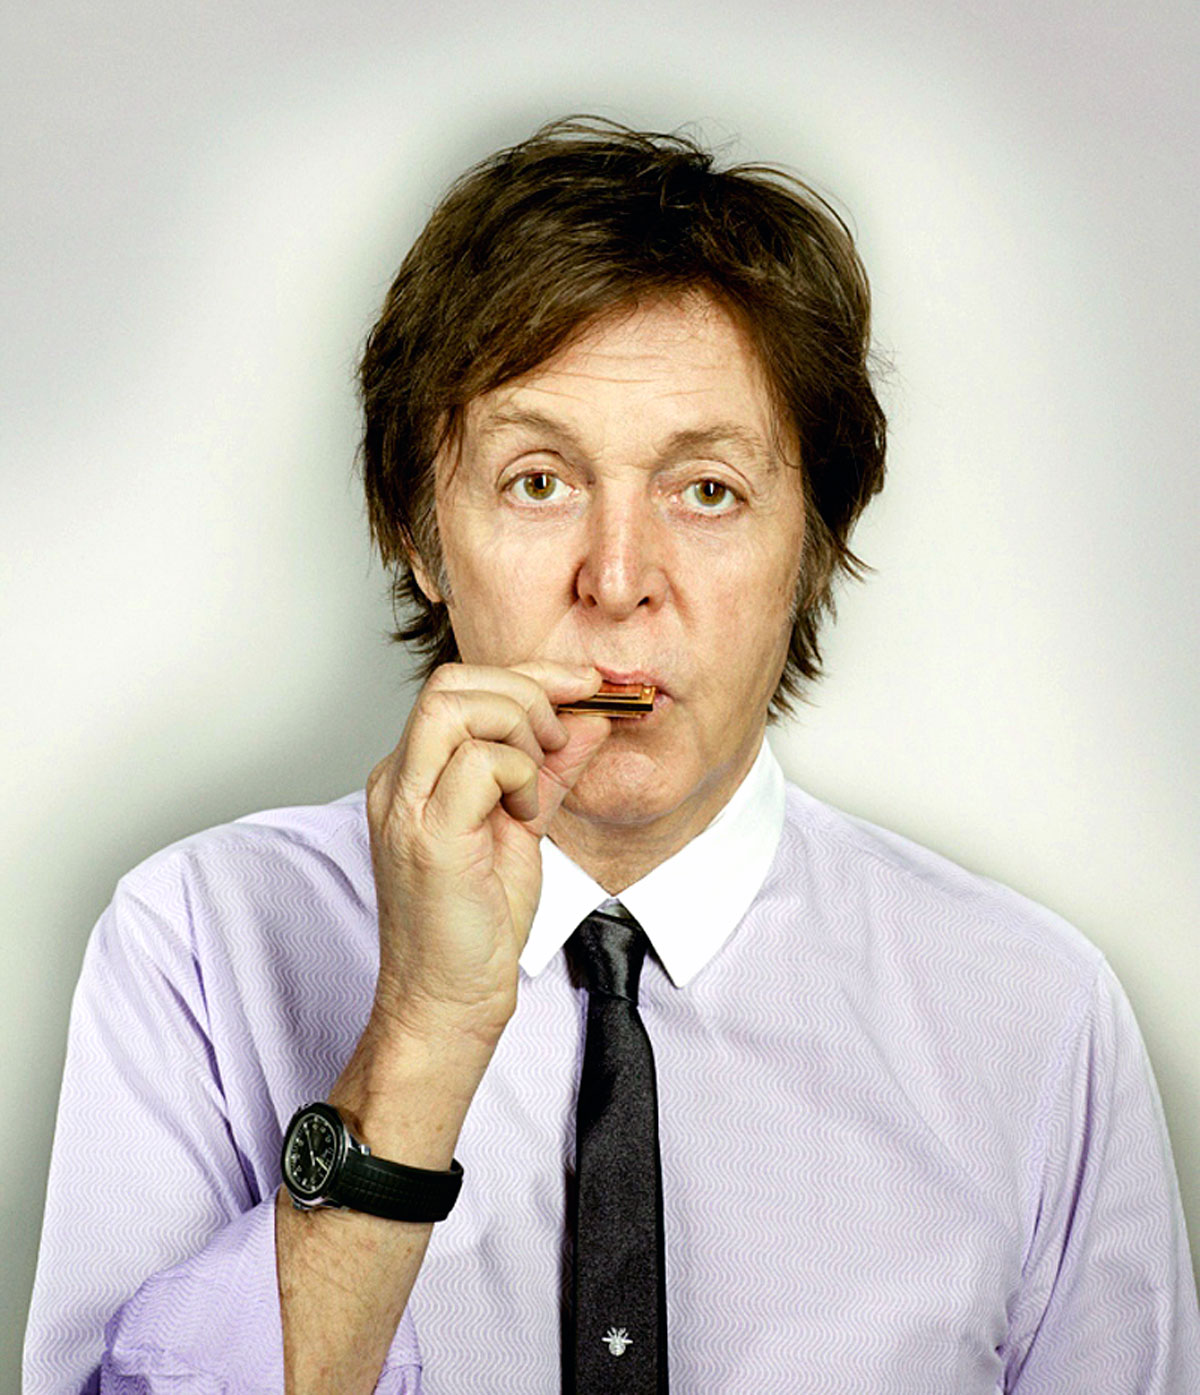 welcome to of jake 39 s patek philippe world sir paul mccartney on. Black Bedroom Furniture Sets. Home Design Ideas